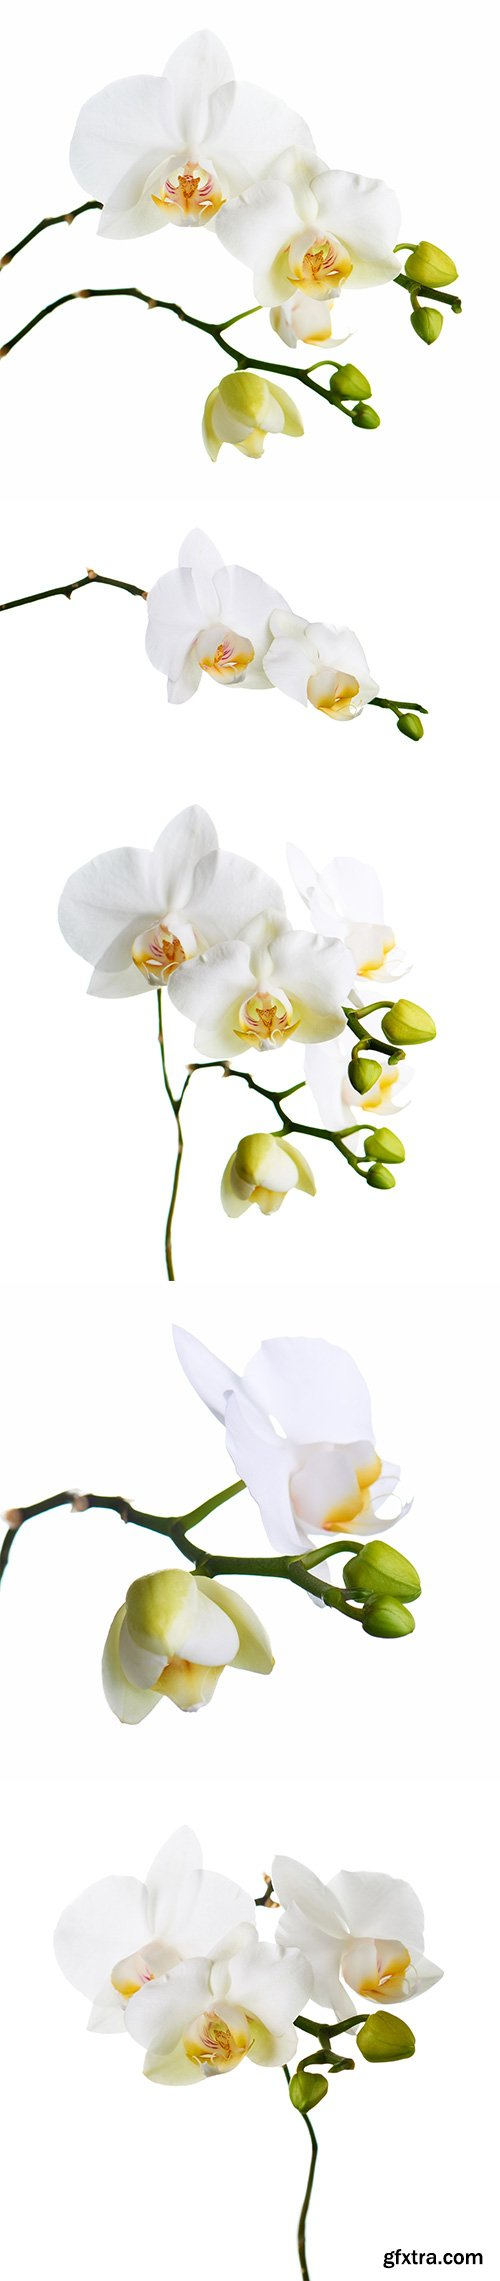 Orchid Isolated - 10xJPGs